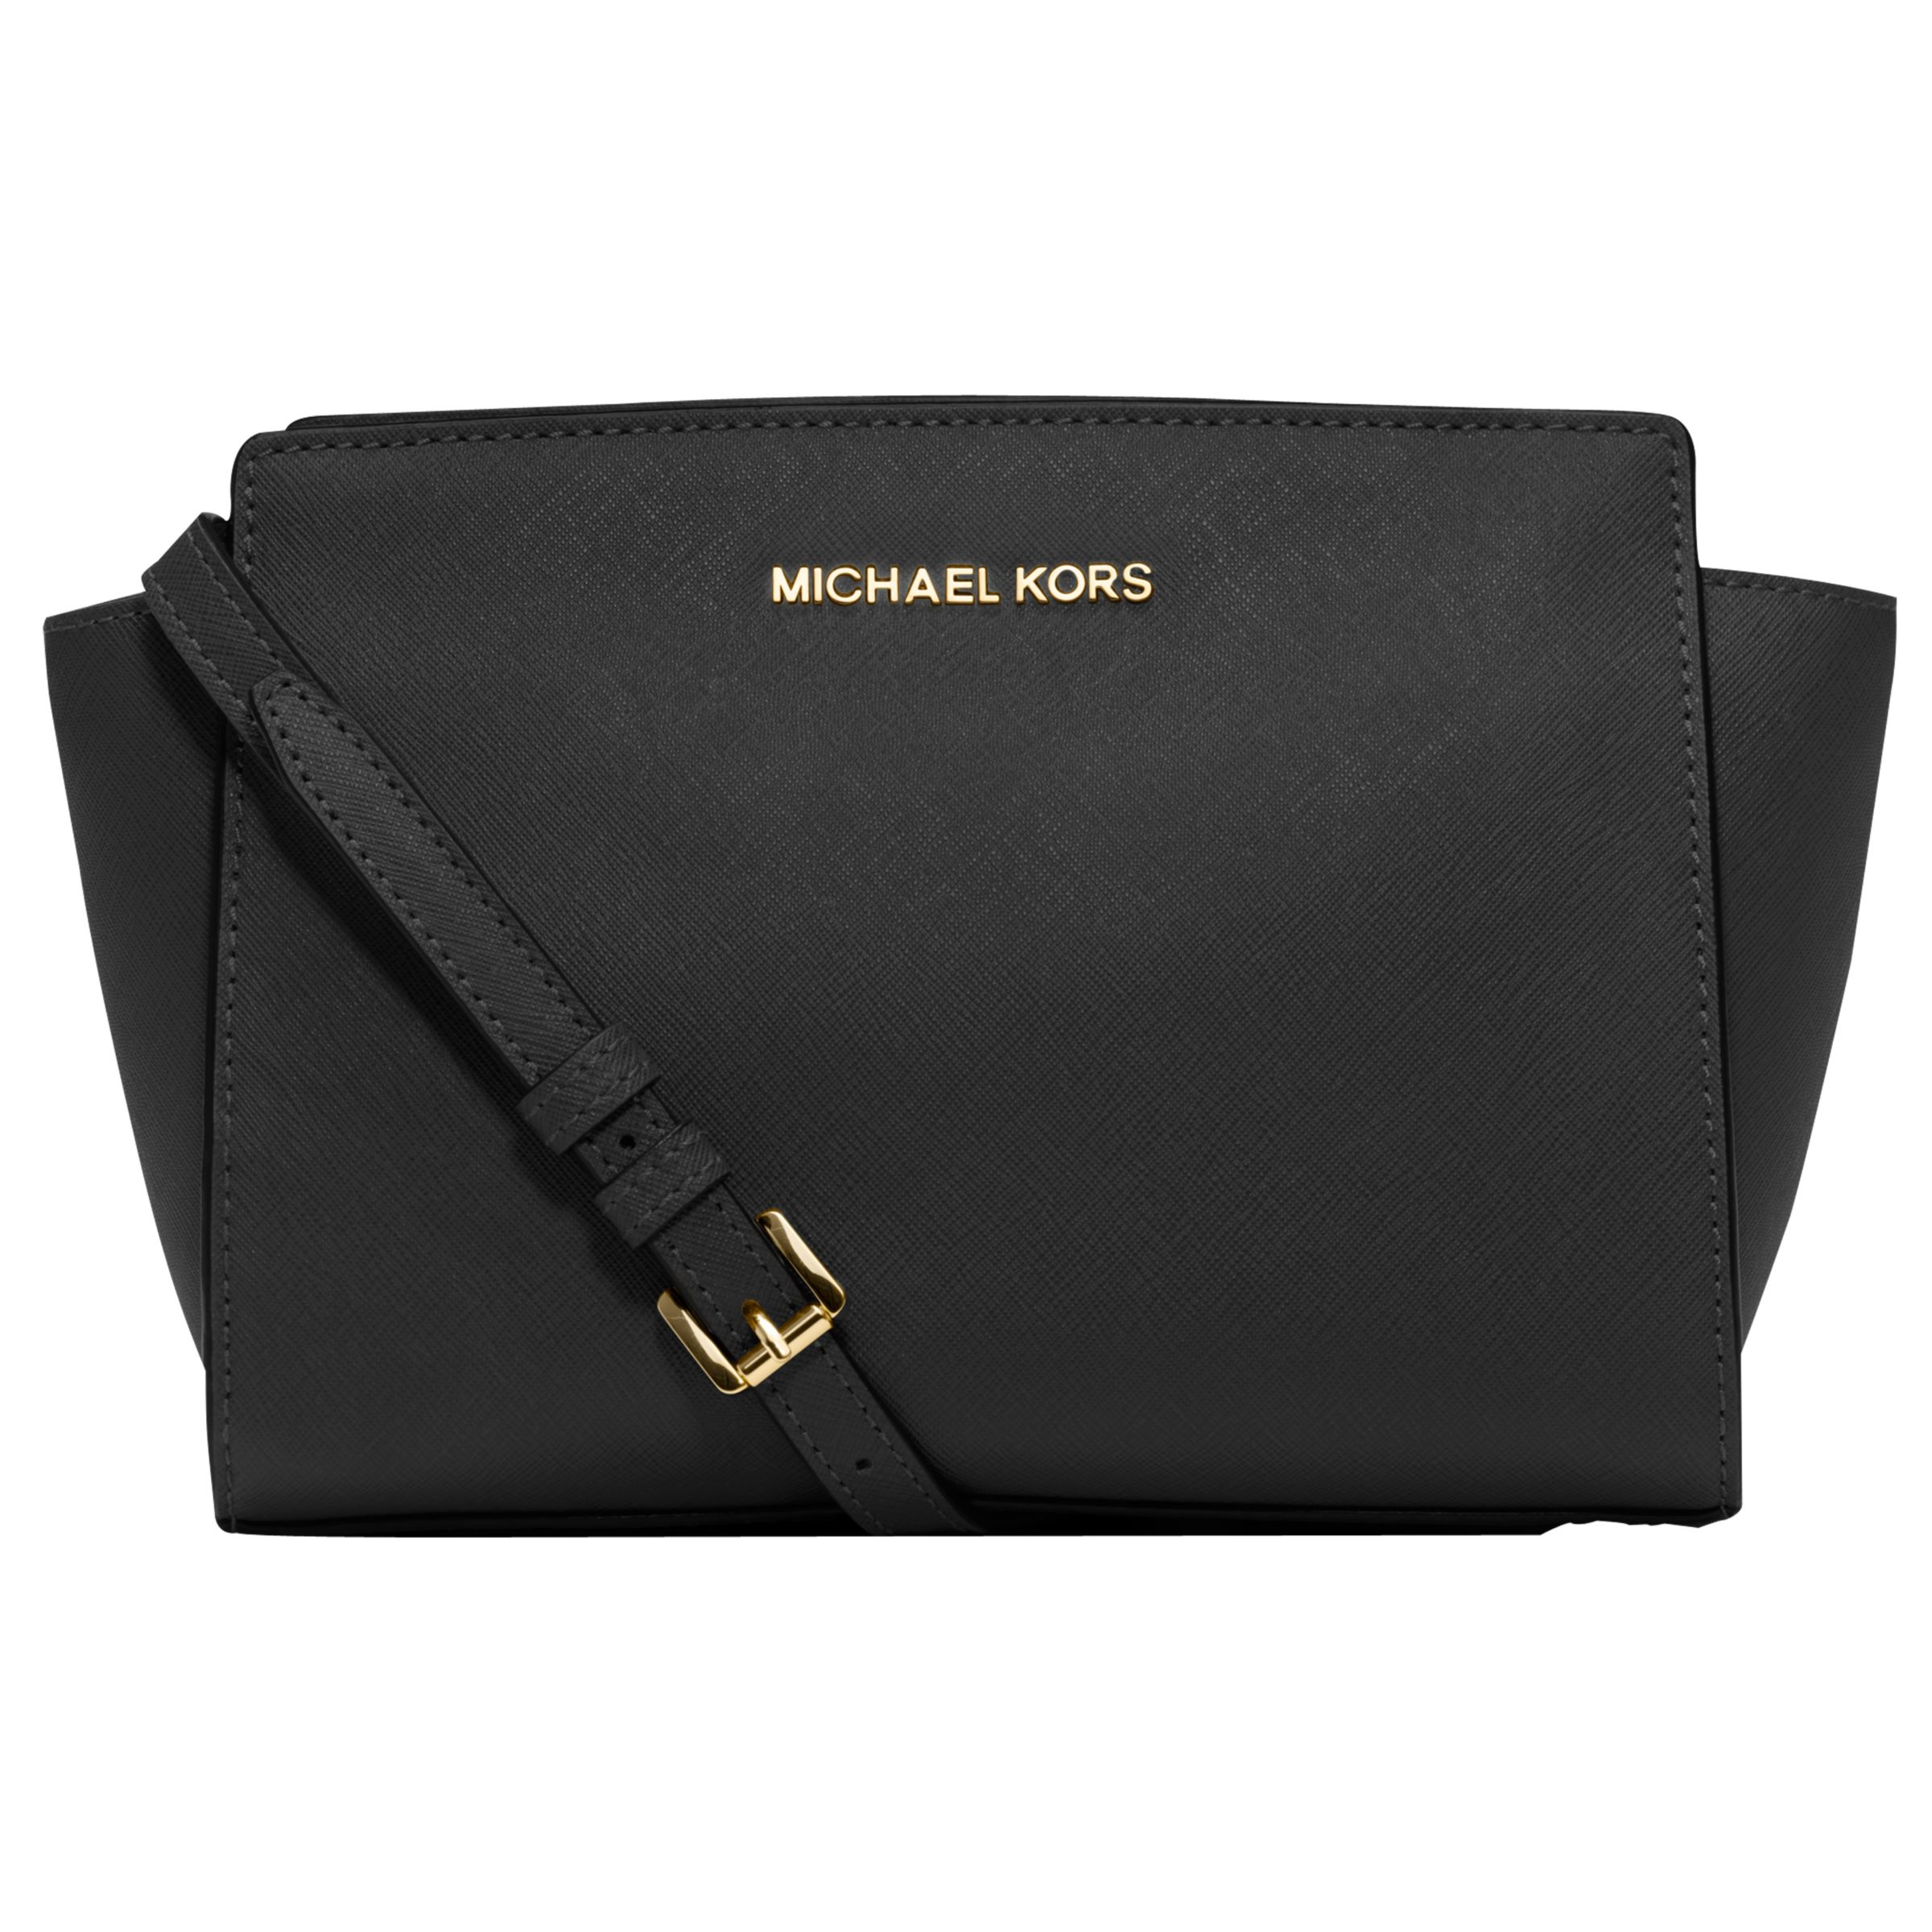 8ebfe236b152 wholesale michael kors selma medium bag ultra pink b7445 2e39d  best price michael  michael kors selma mid leather messenger bag at john lewis partners 762a1  ...